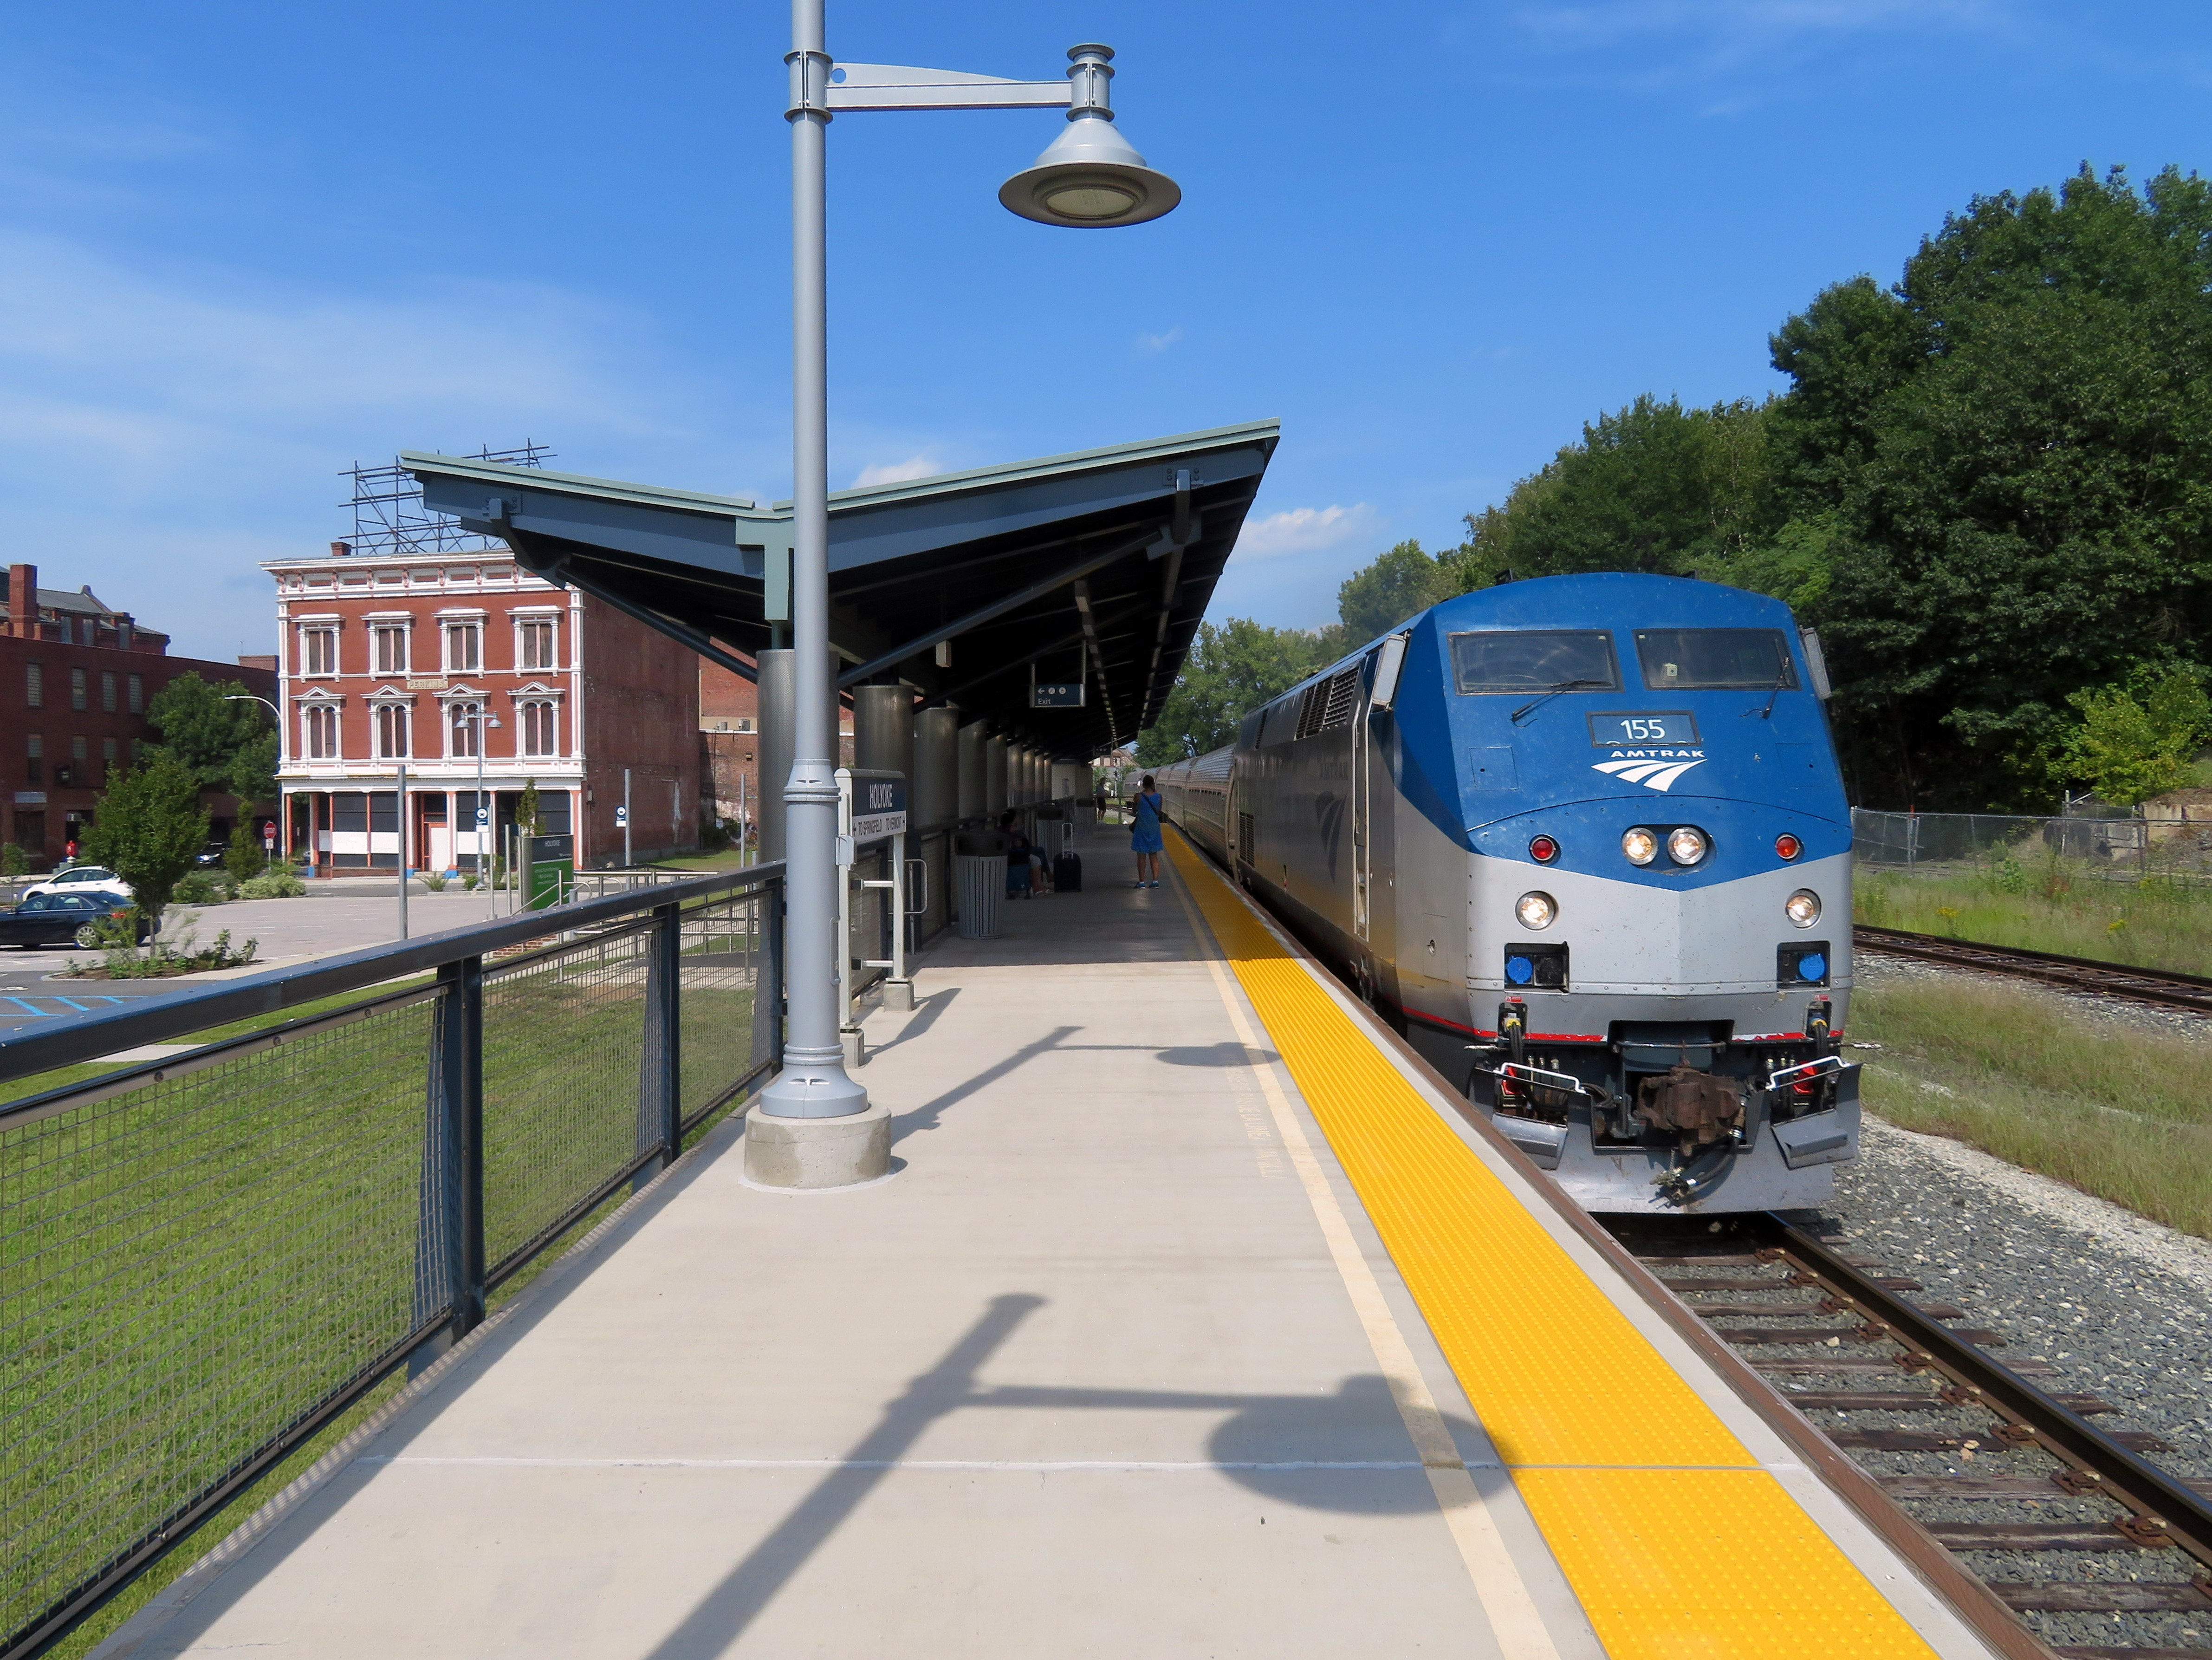 5 trains and each train is bigger images clipart clipart Holyoke station - Wikipedia clipart